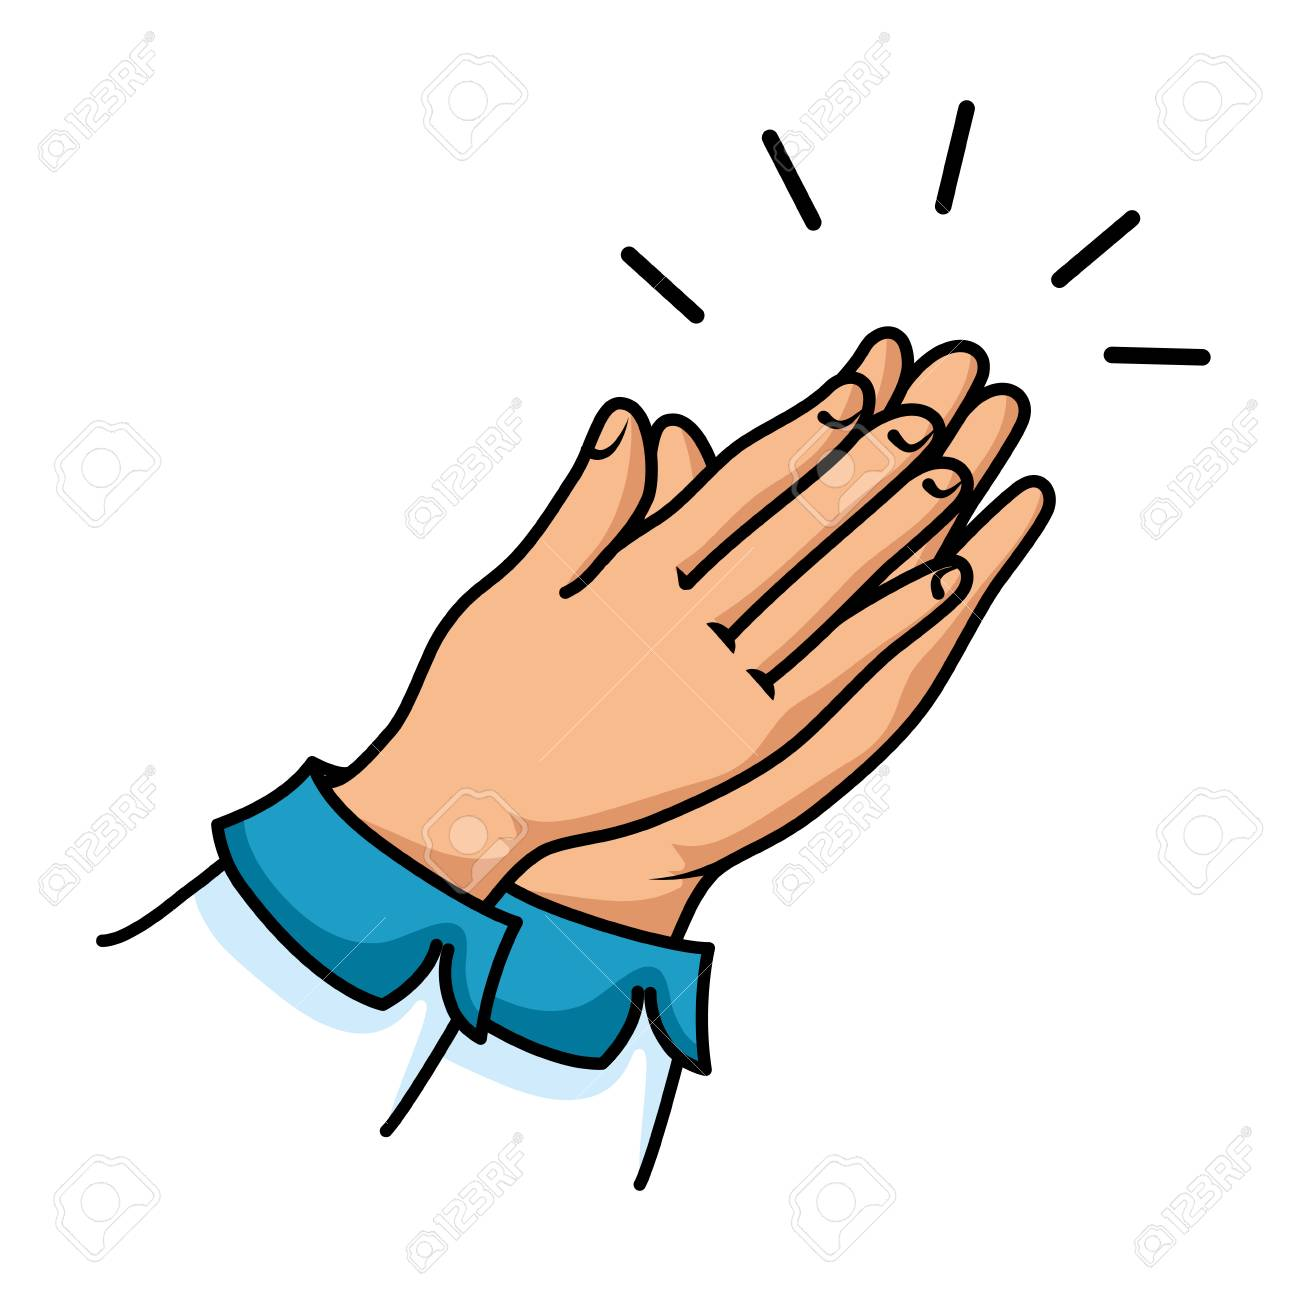 hands applauding isolated icon vector illustration design - 90472218